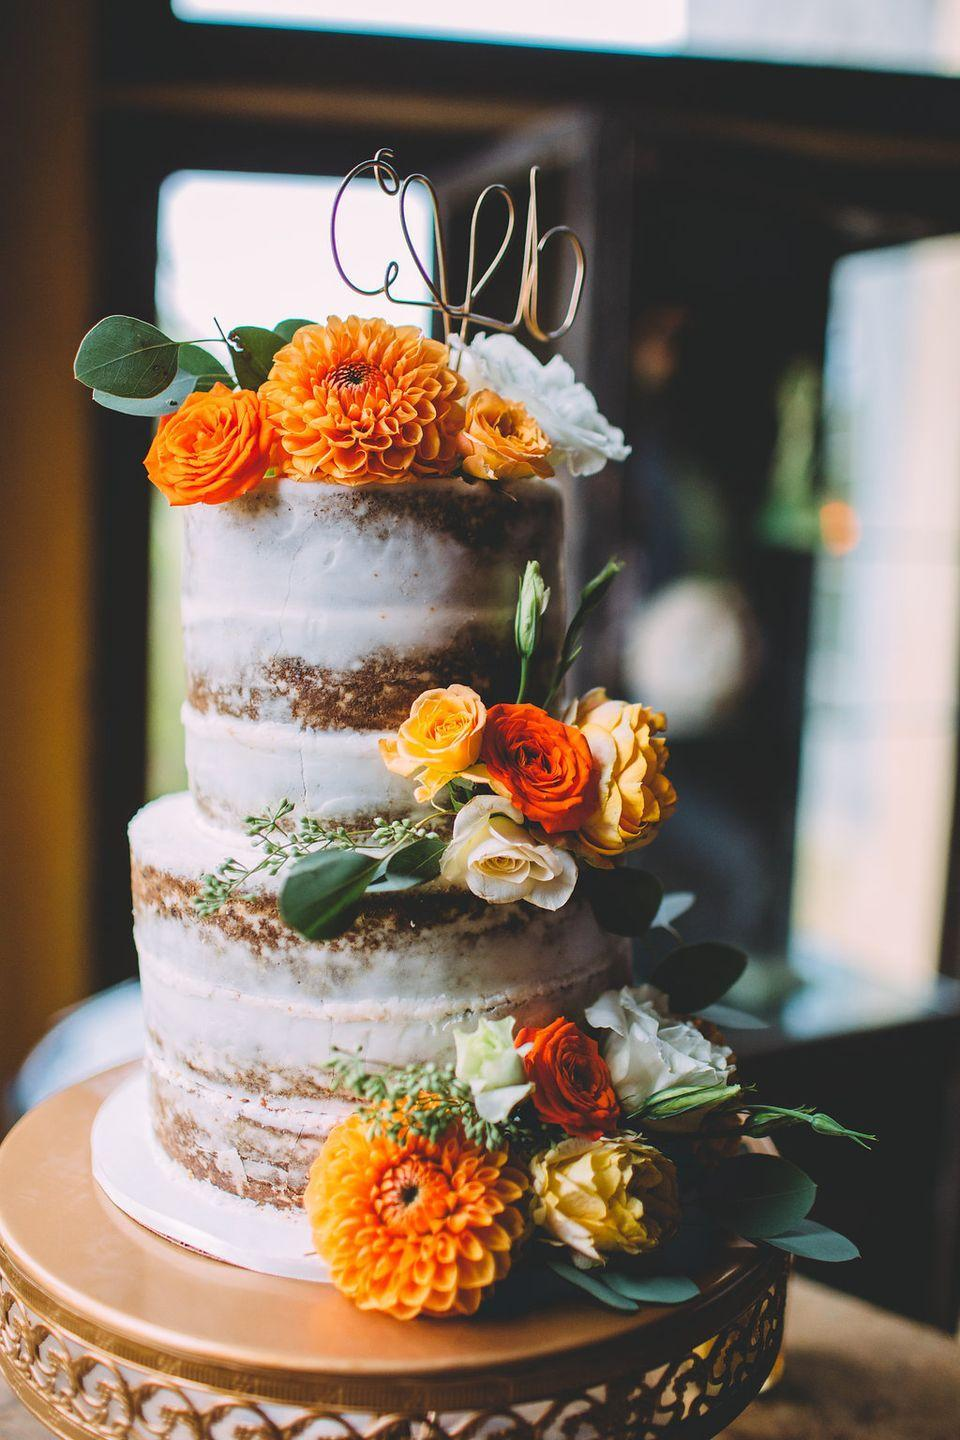 """<p>The clusters of orange and yellow roses and zinnias by <a href=""""https://www.poppyhillflowers.com/"""" rel=""""nofollow noopener"""" target=""""_blank"""" data-ylk=""""slk:Poppyhill Flowers"""" class=""""link rapid-noclick-resp"""">Poppyhill Flowers</a> on this <a href=""""http://frostitcakery.com/"""" rel=""""nofollow noopener"""" target=""""_blank"""" data-ylk=""""slk:Frost It Cakery"""" class=""""link rapid-noclick-resp"""">Frost It Cakery</a> creation.</p>"""